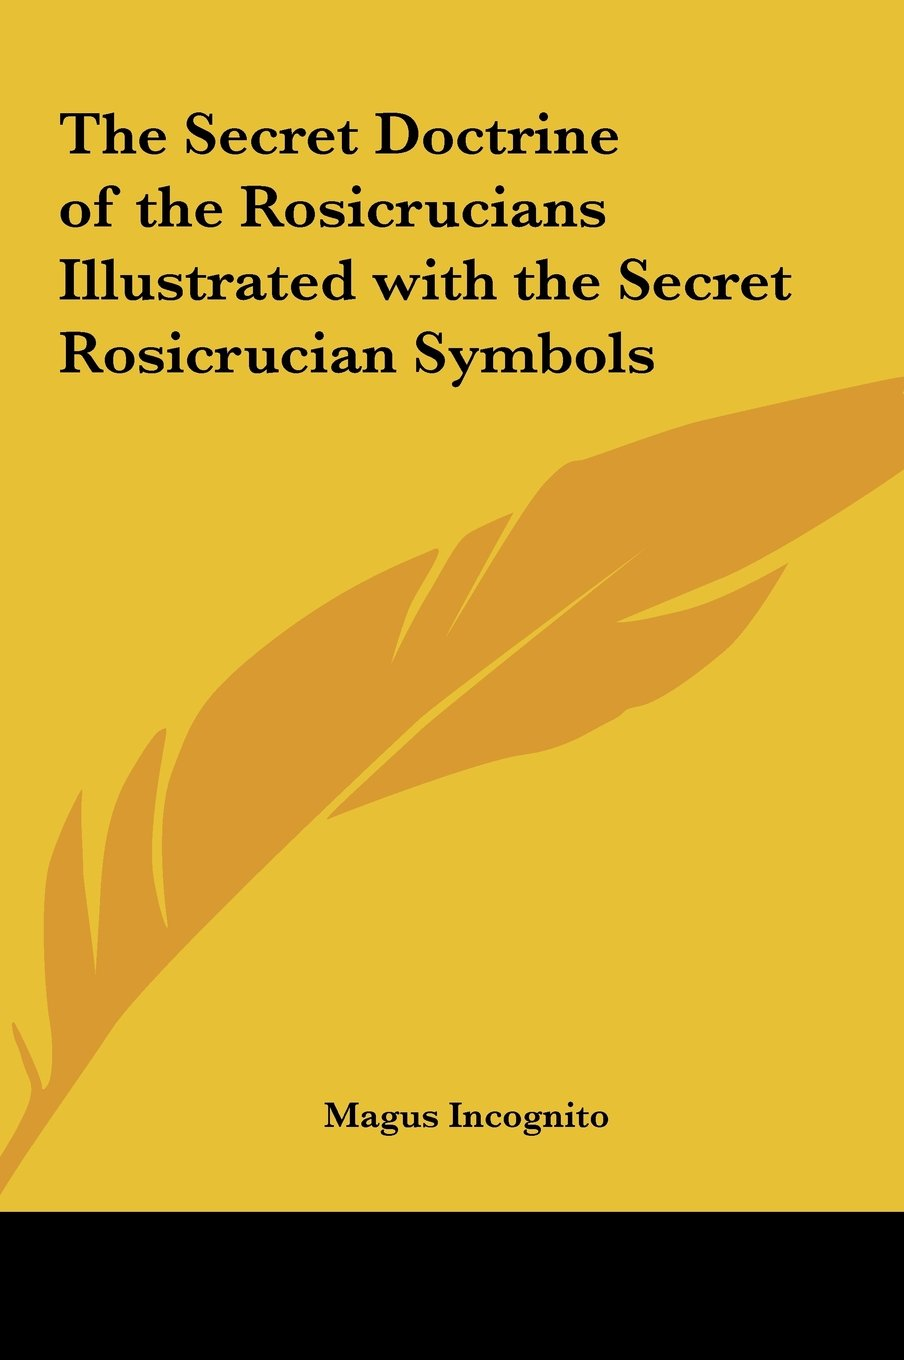 The Secret Doctrine of the Rosicrucians Illustrated with the Secret Rosicrucian Symbols pdf